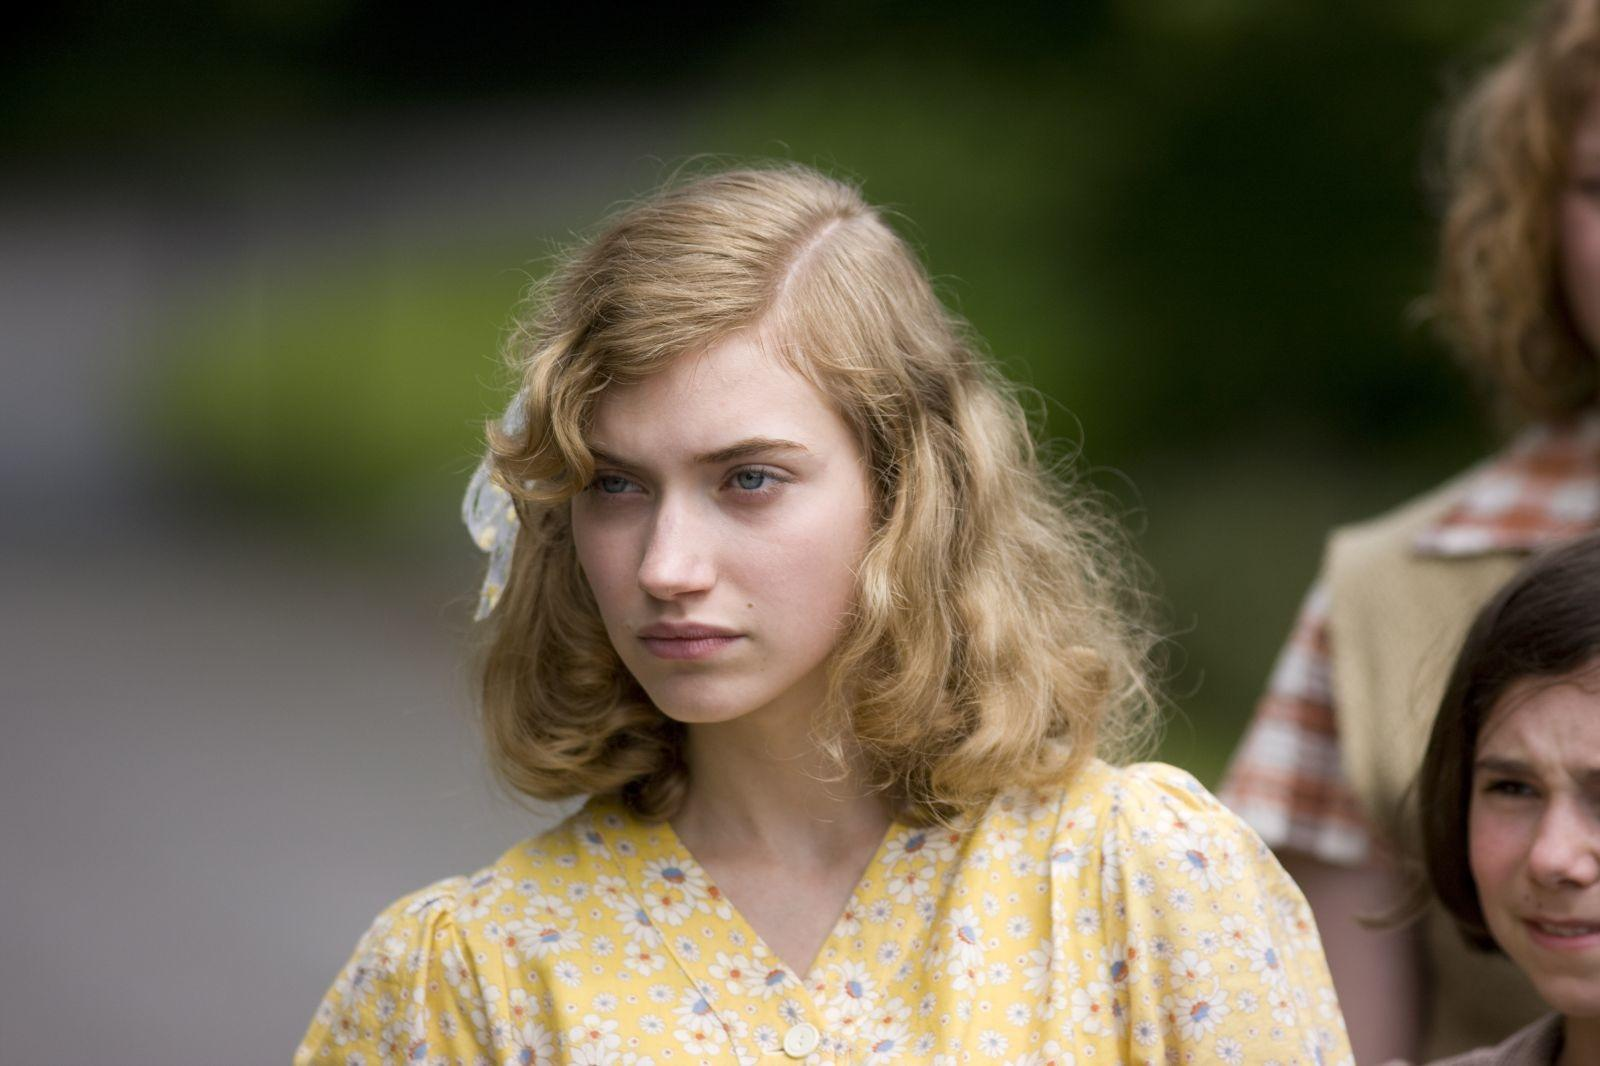 Imogen Poots wallpapers HD quality